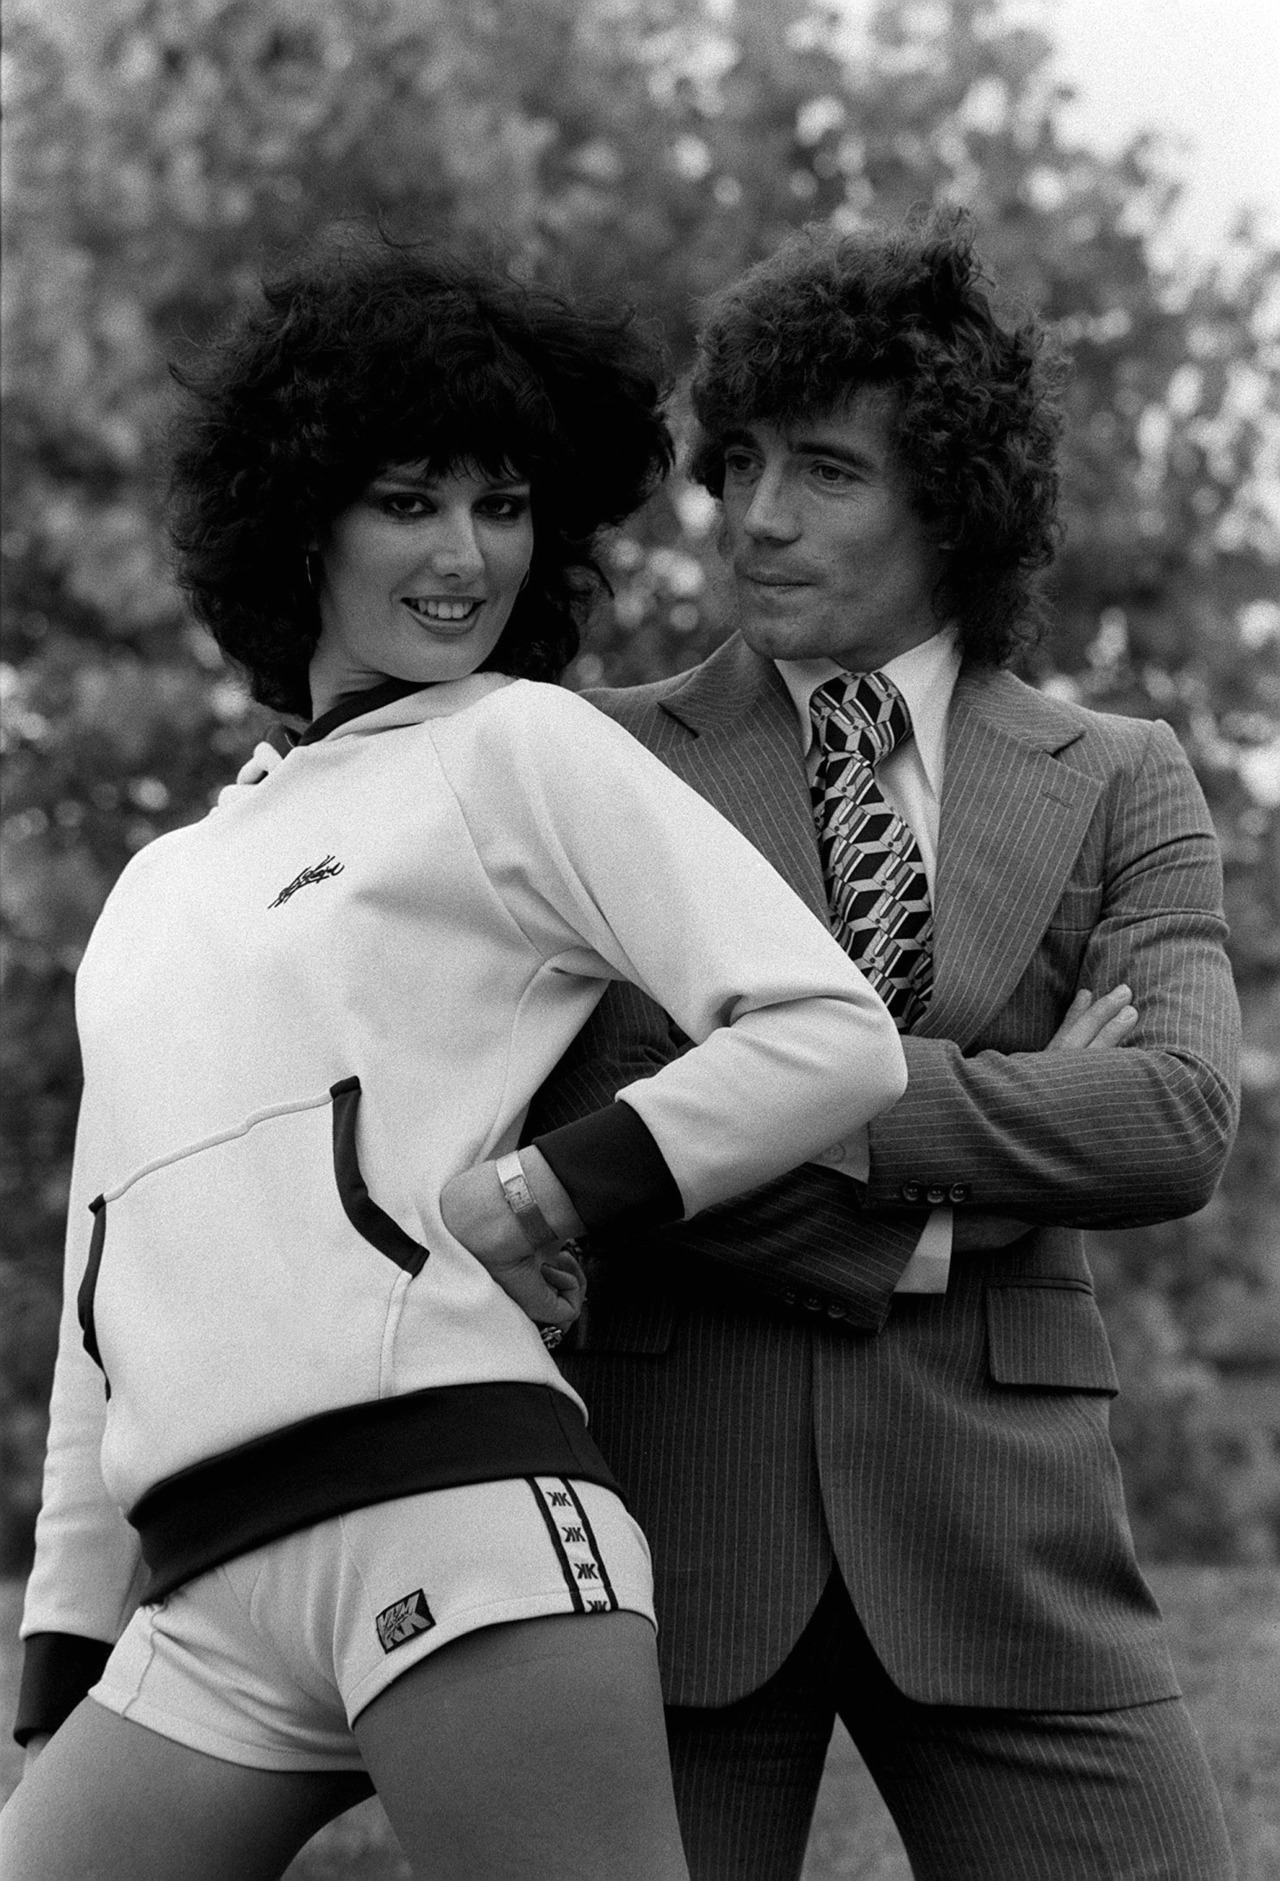 Kevin Keegan in 1978, with a young lady modeling Keegan's own line of hotpants.